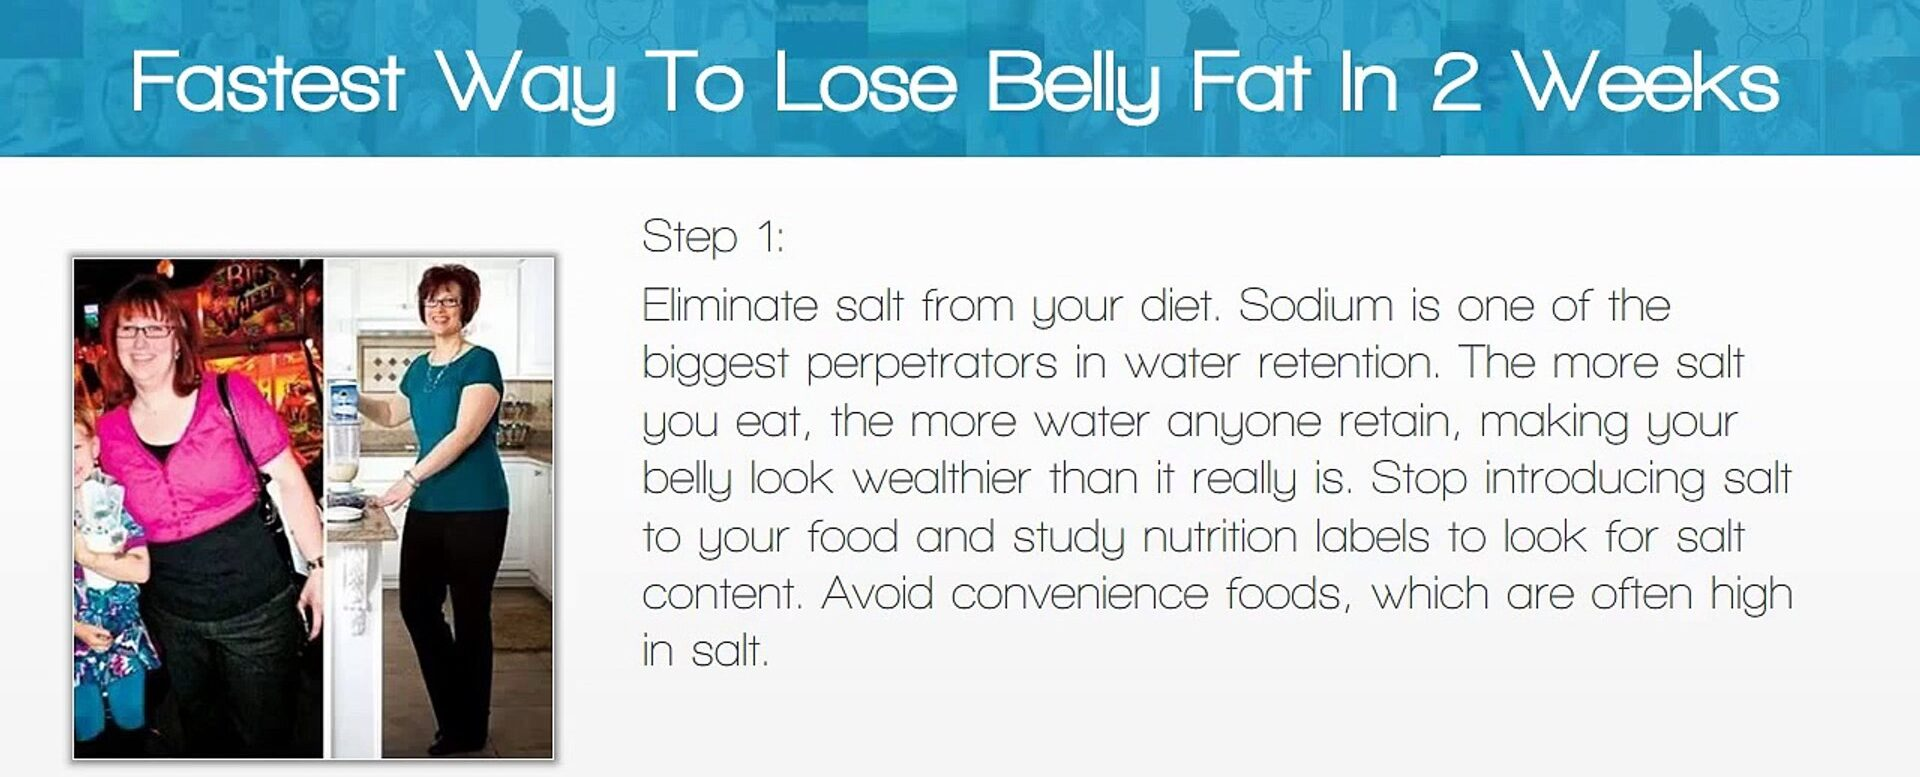 Fastest Way To Lose Weight This Week